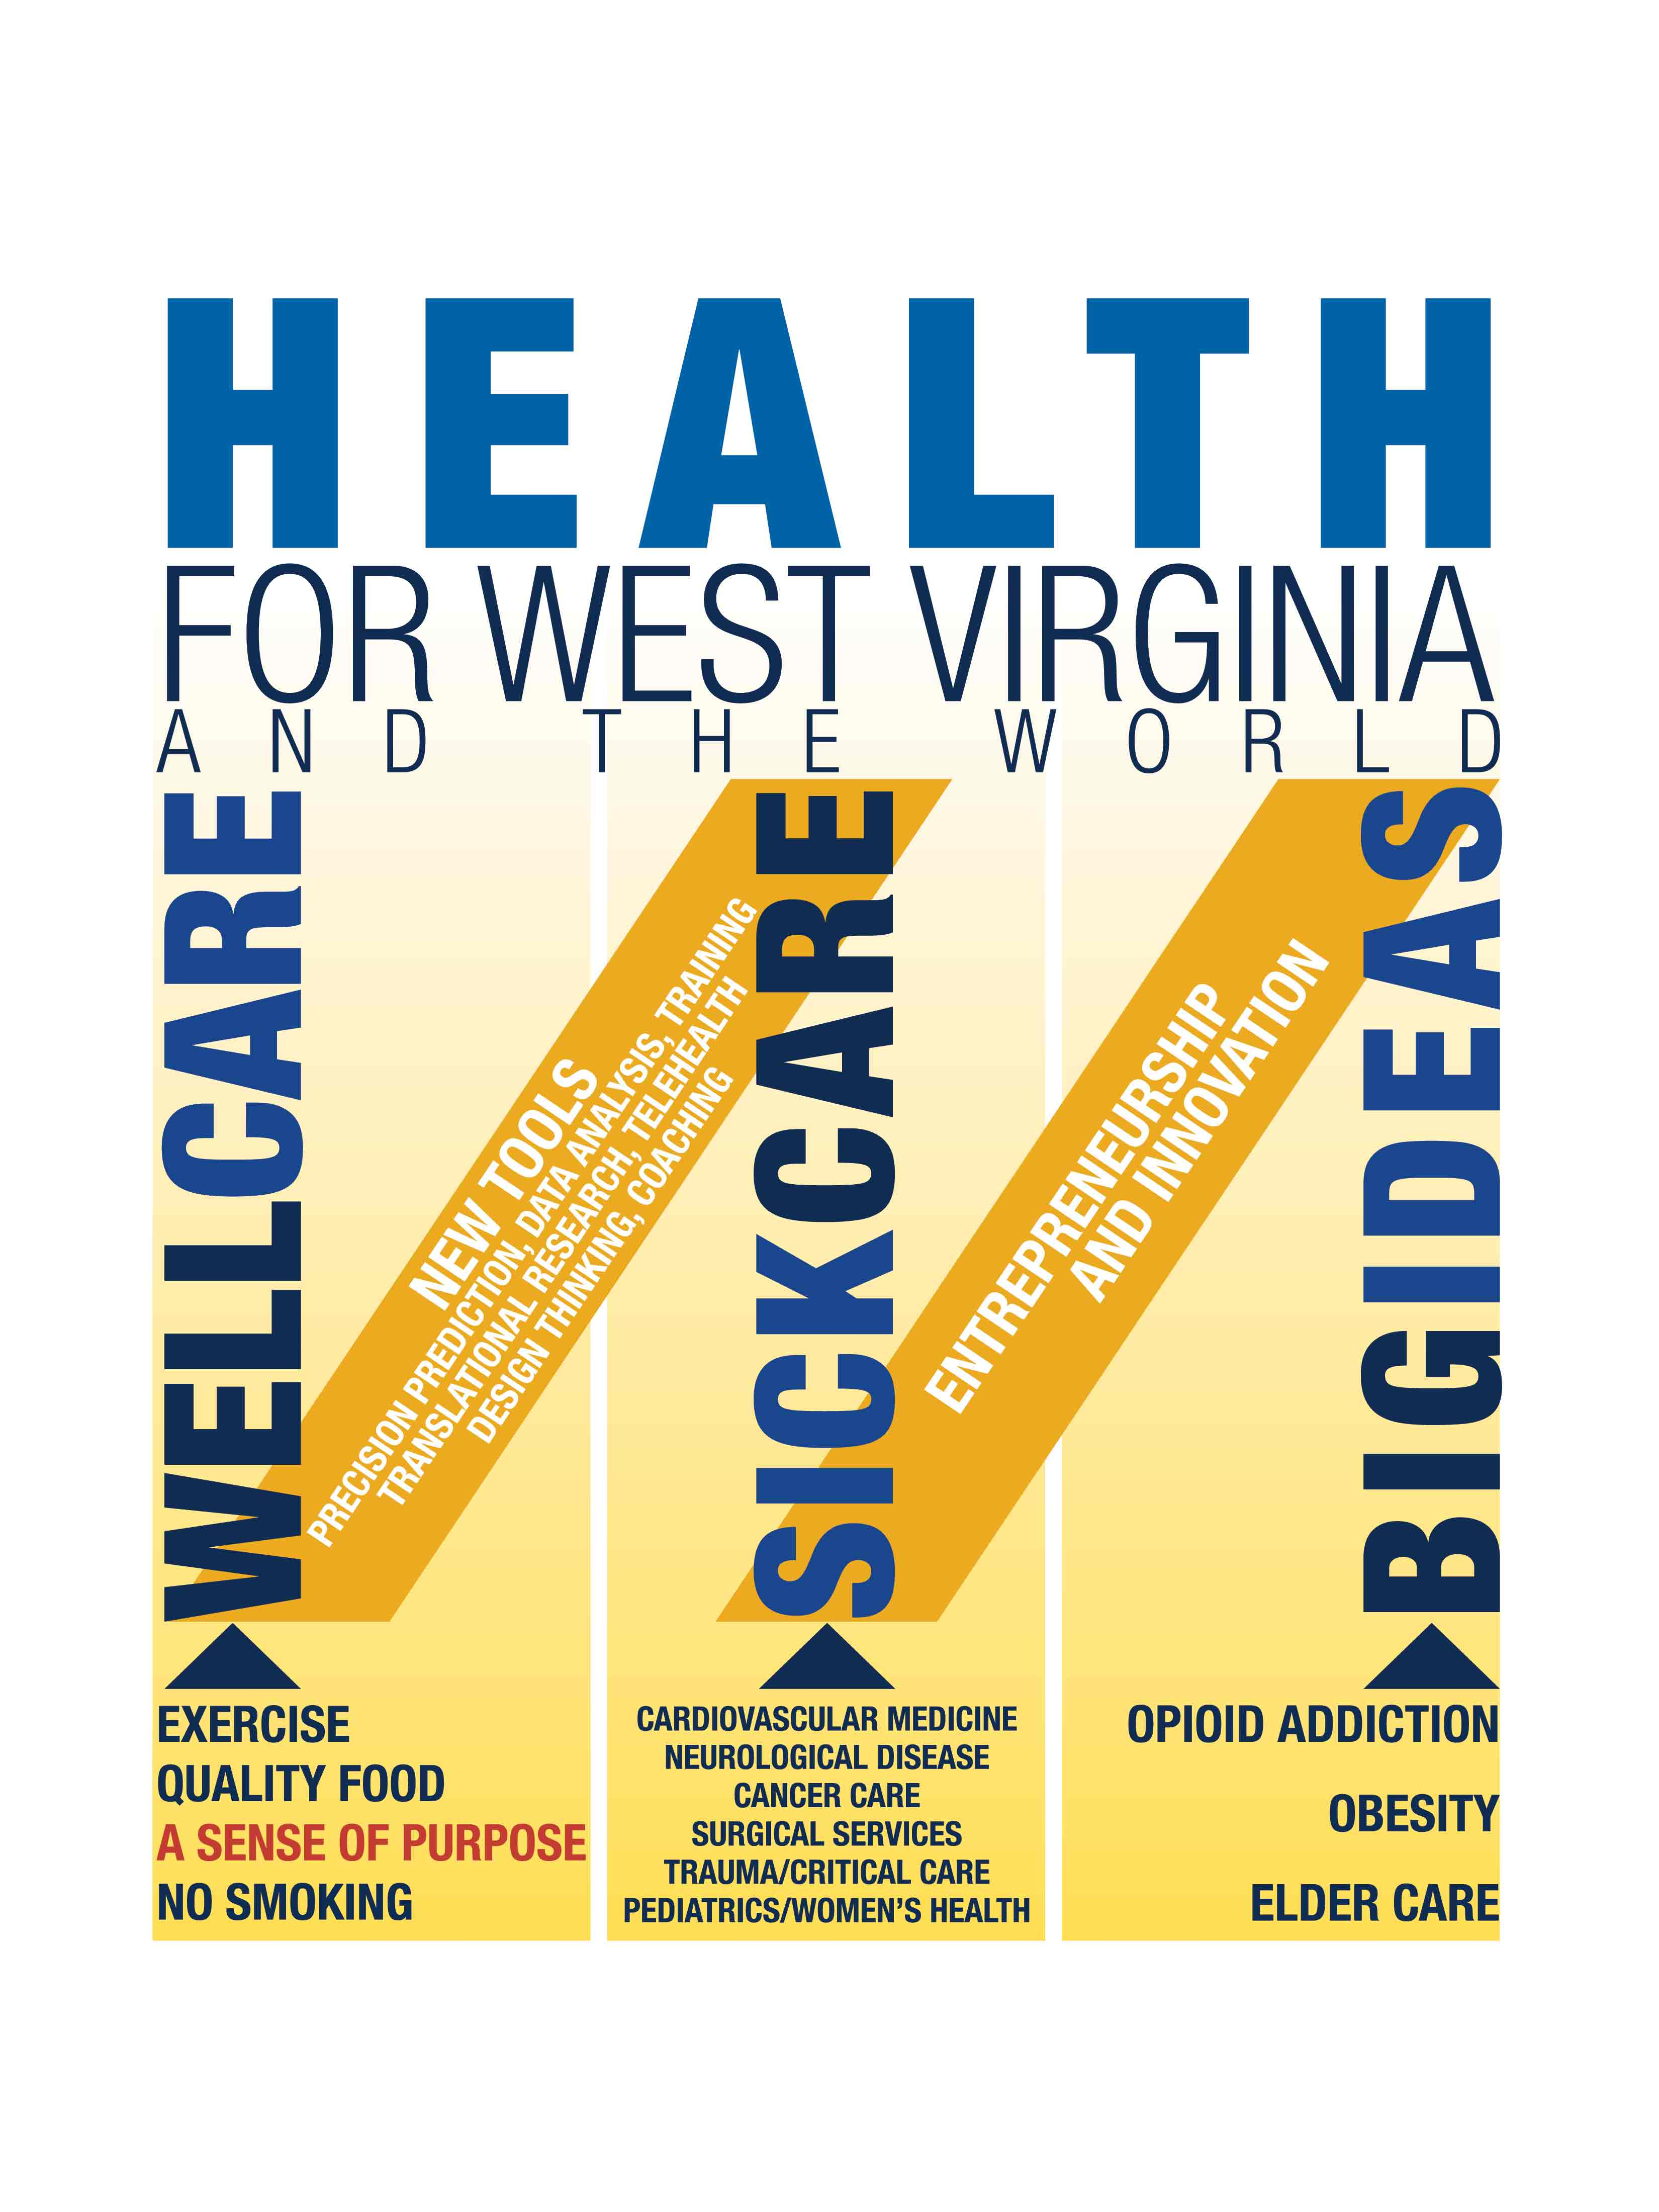 Pillars of Healthcare in West Virginia